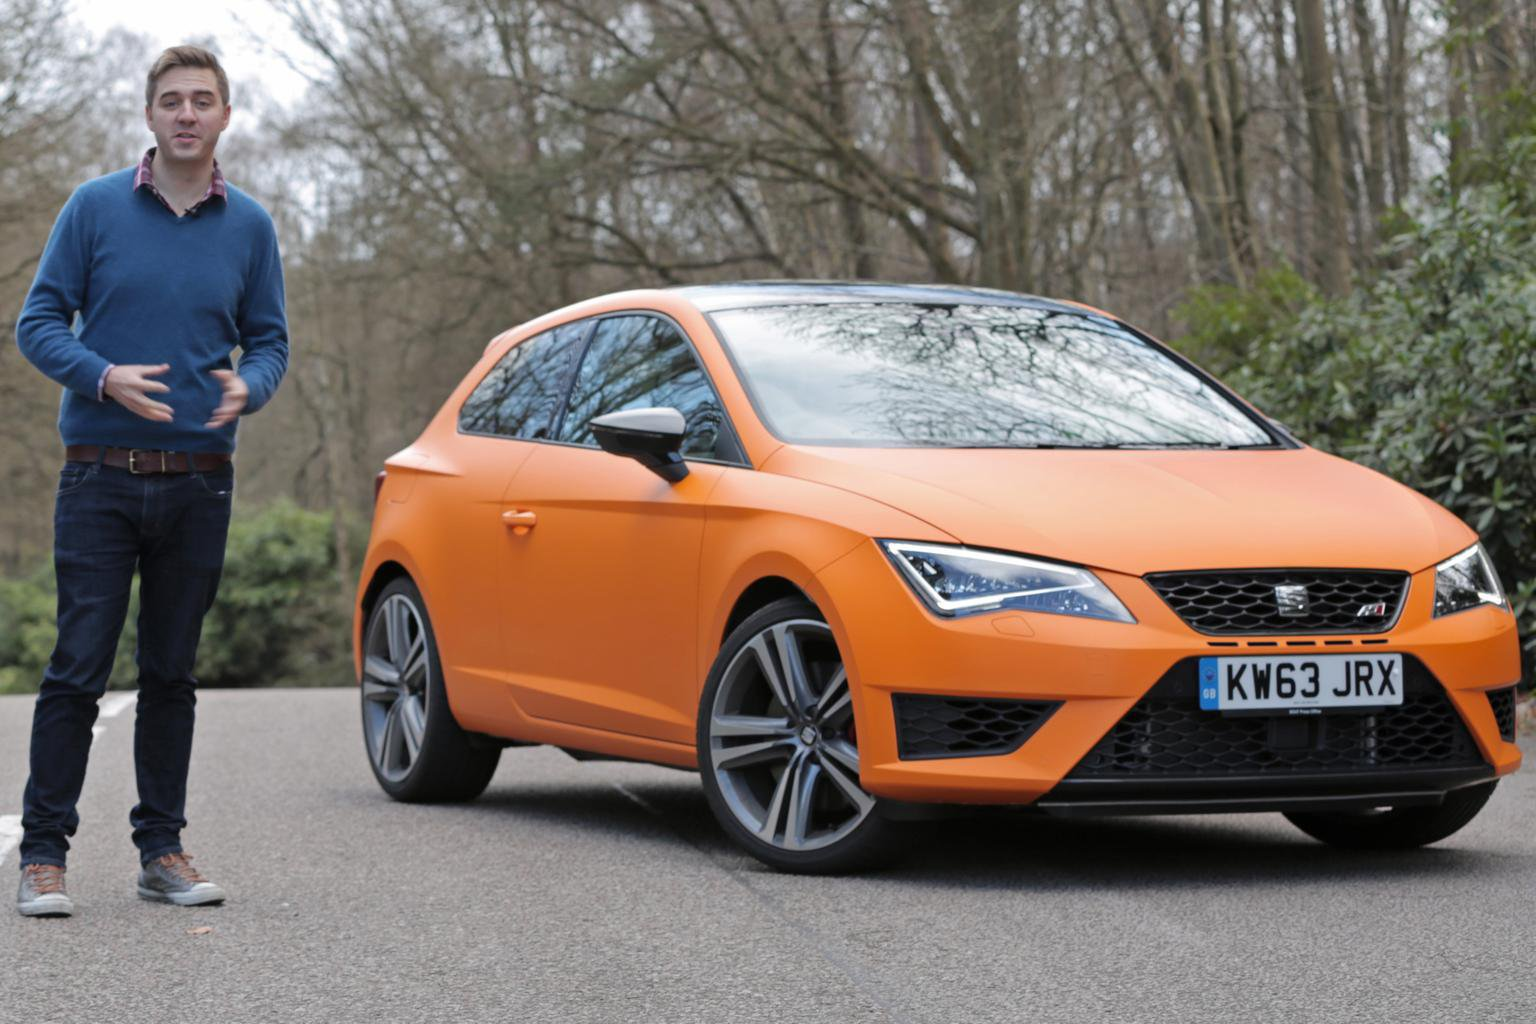 Video review: 2014 Seat Leon Cupra